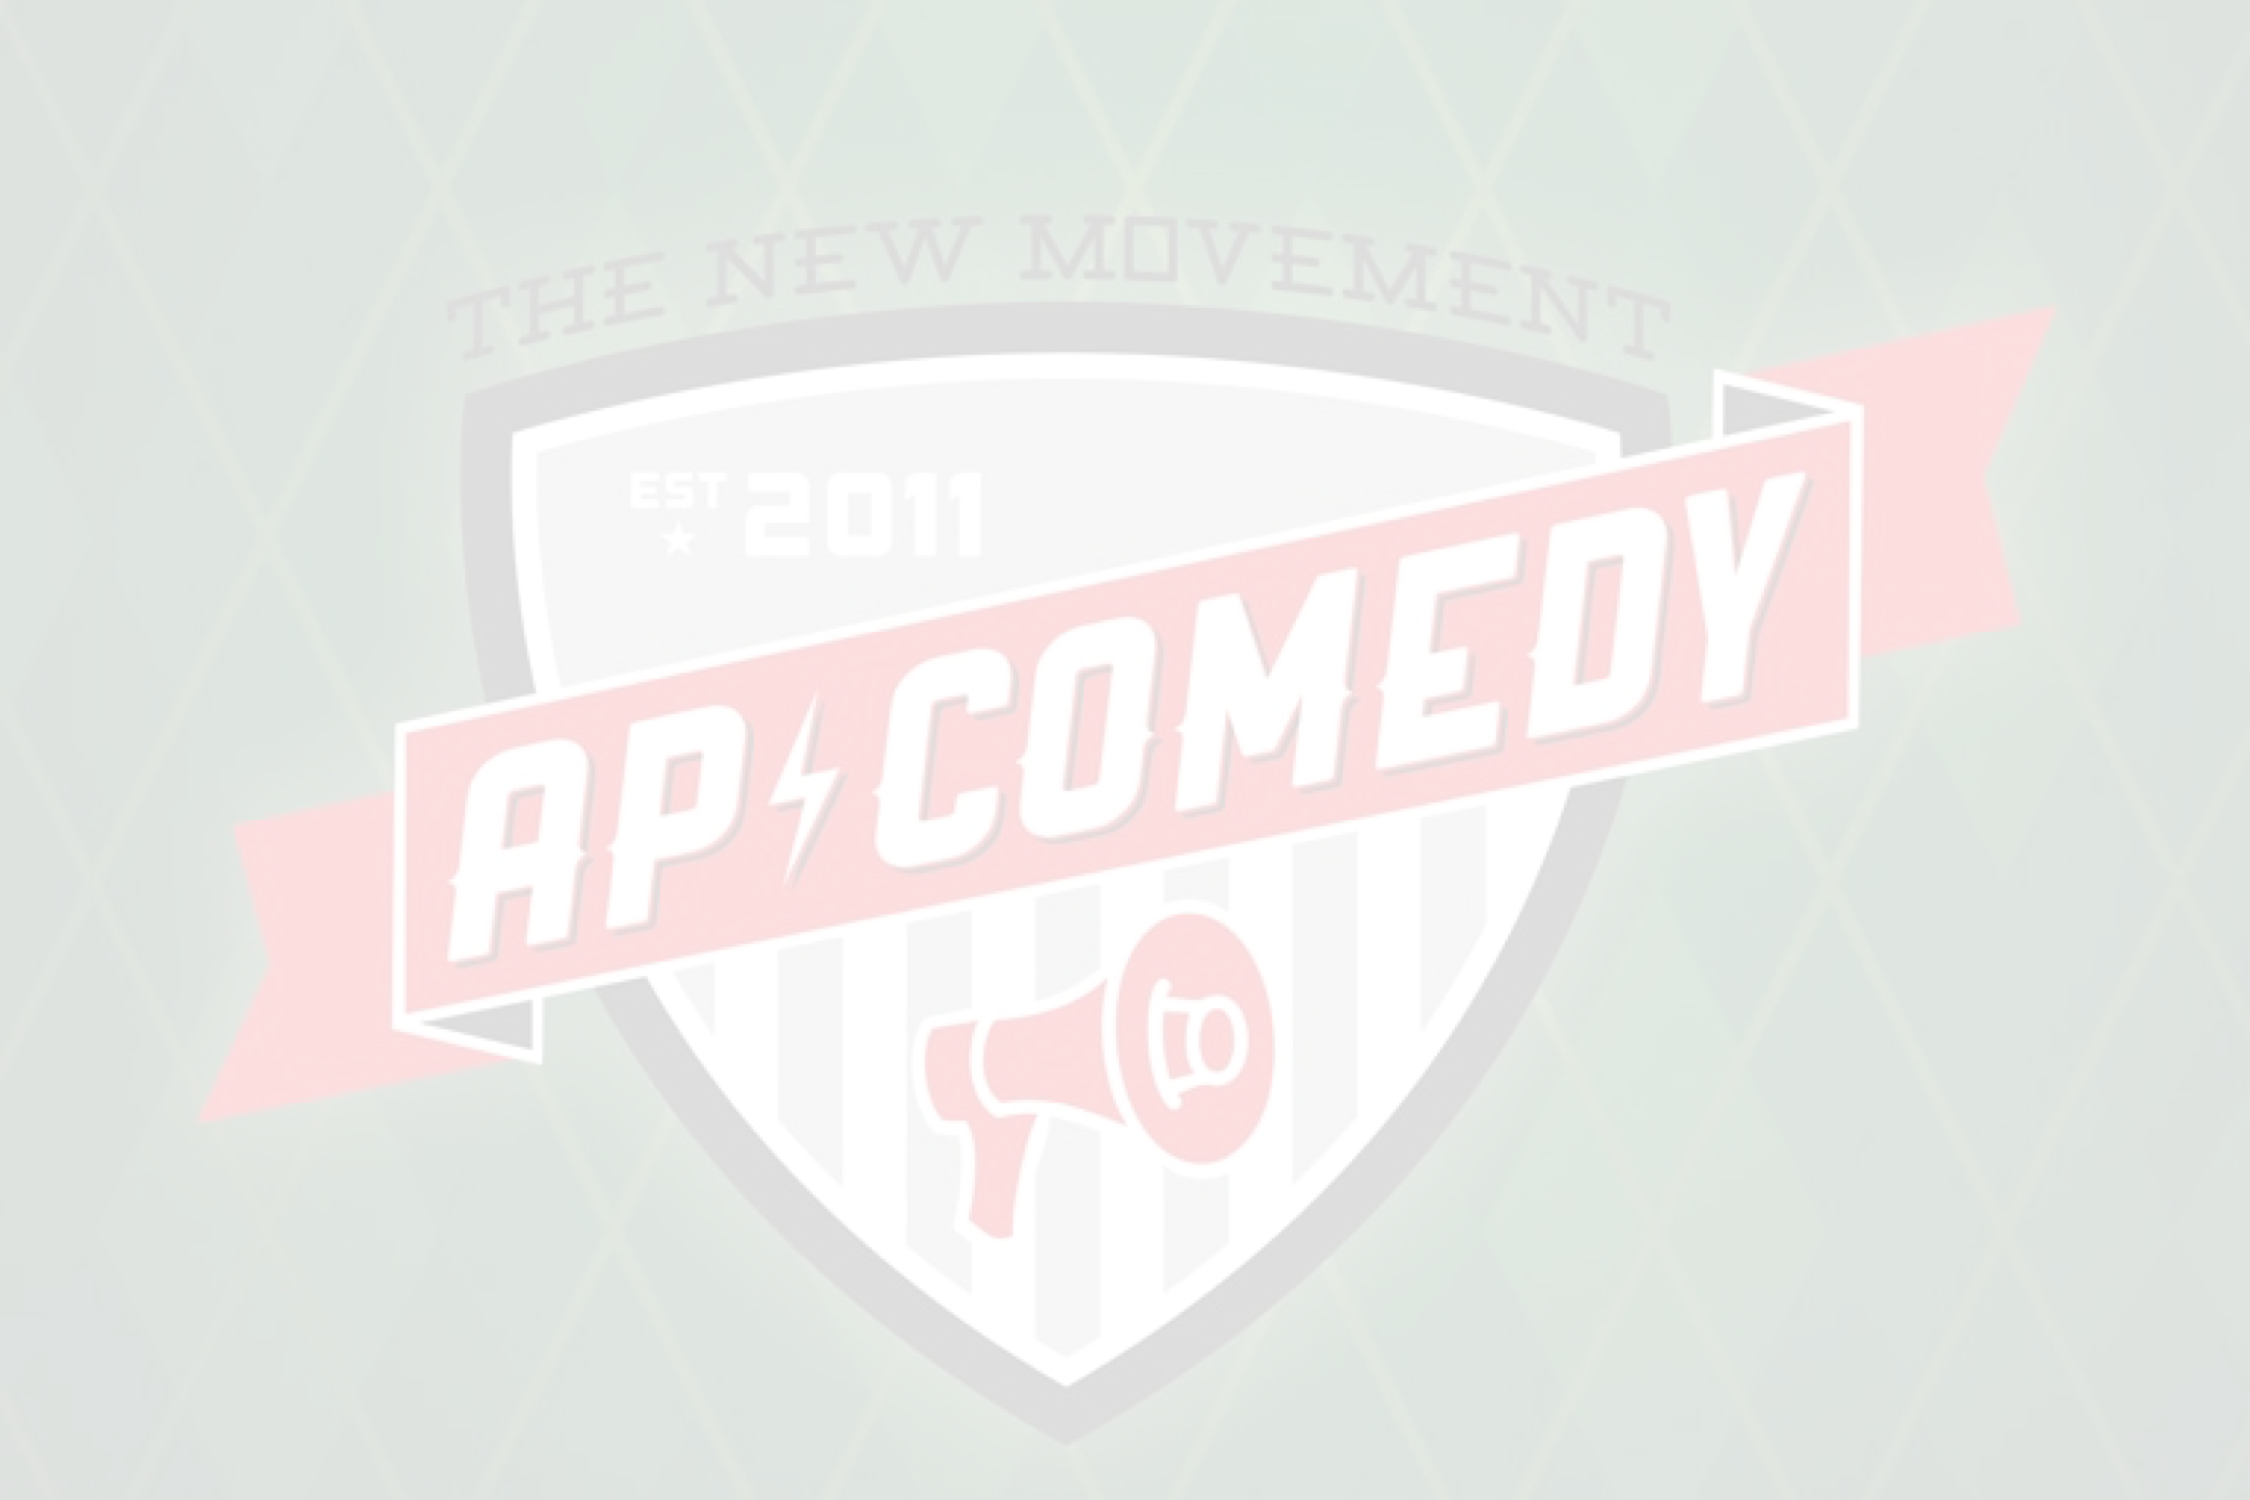 AP Comedy - How can improv comedy empower underprivileged students?